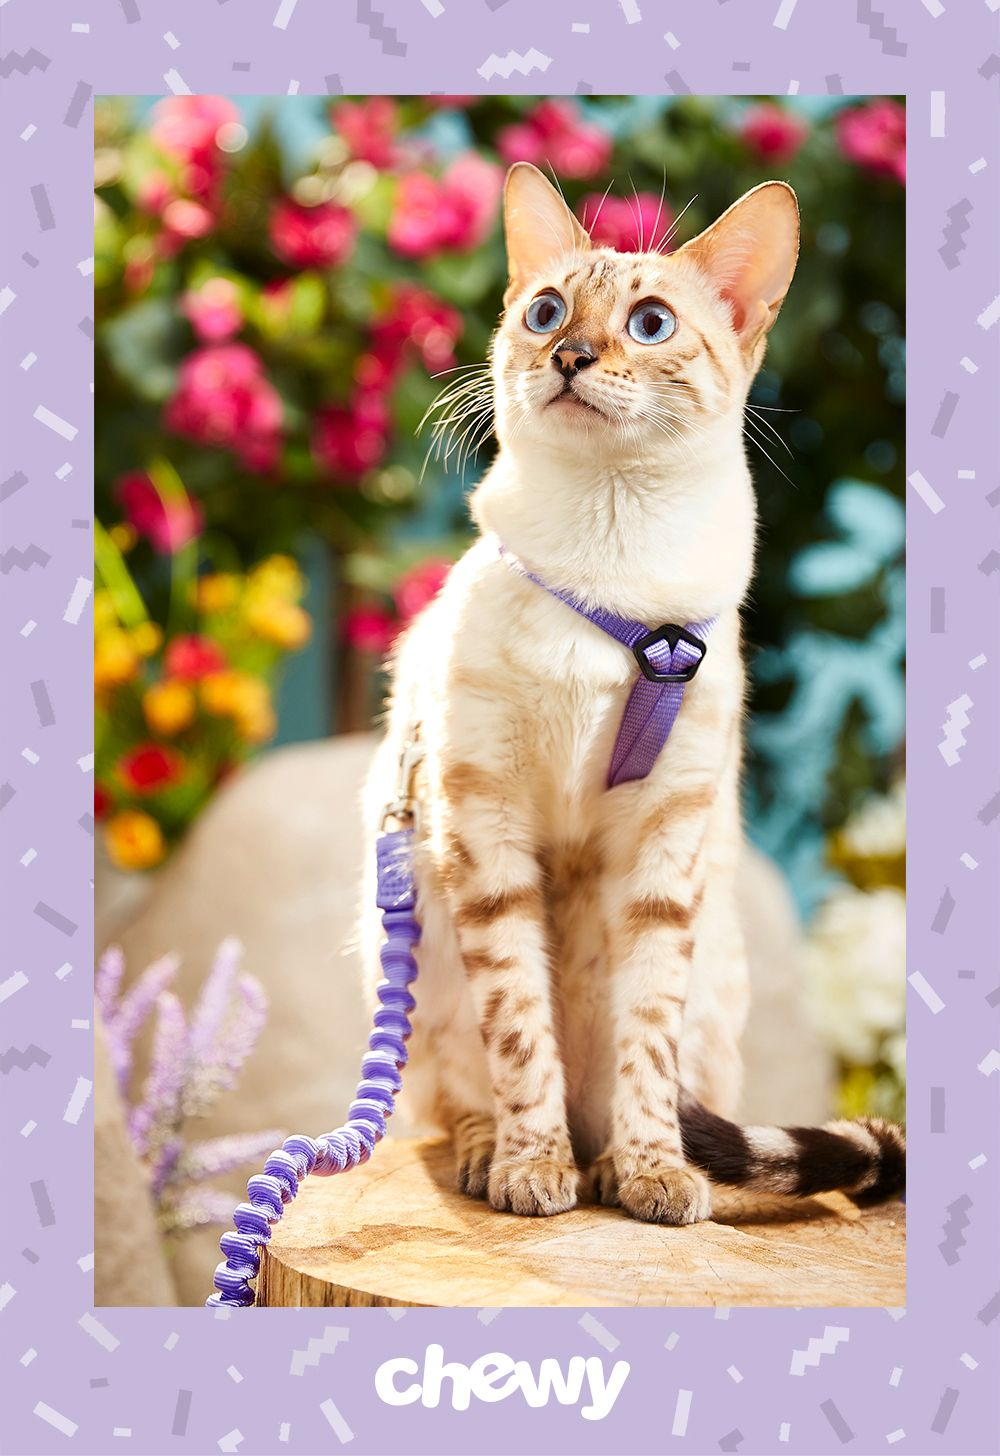 Finding The Perfect Leash That Allows You To Share Enjoyable Walks Exercise With Your Feline Friend Can Be Tough The Petsafe Cat Leash Cats Kitty